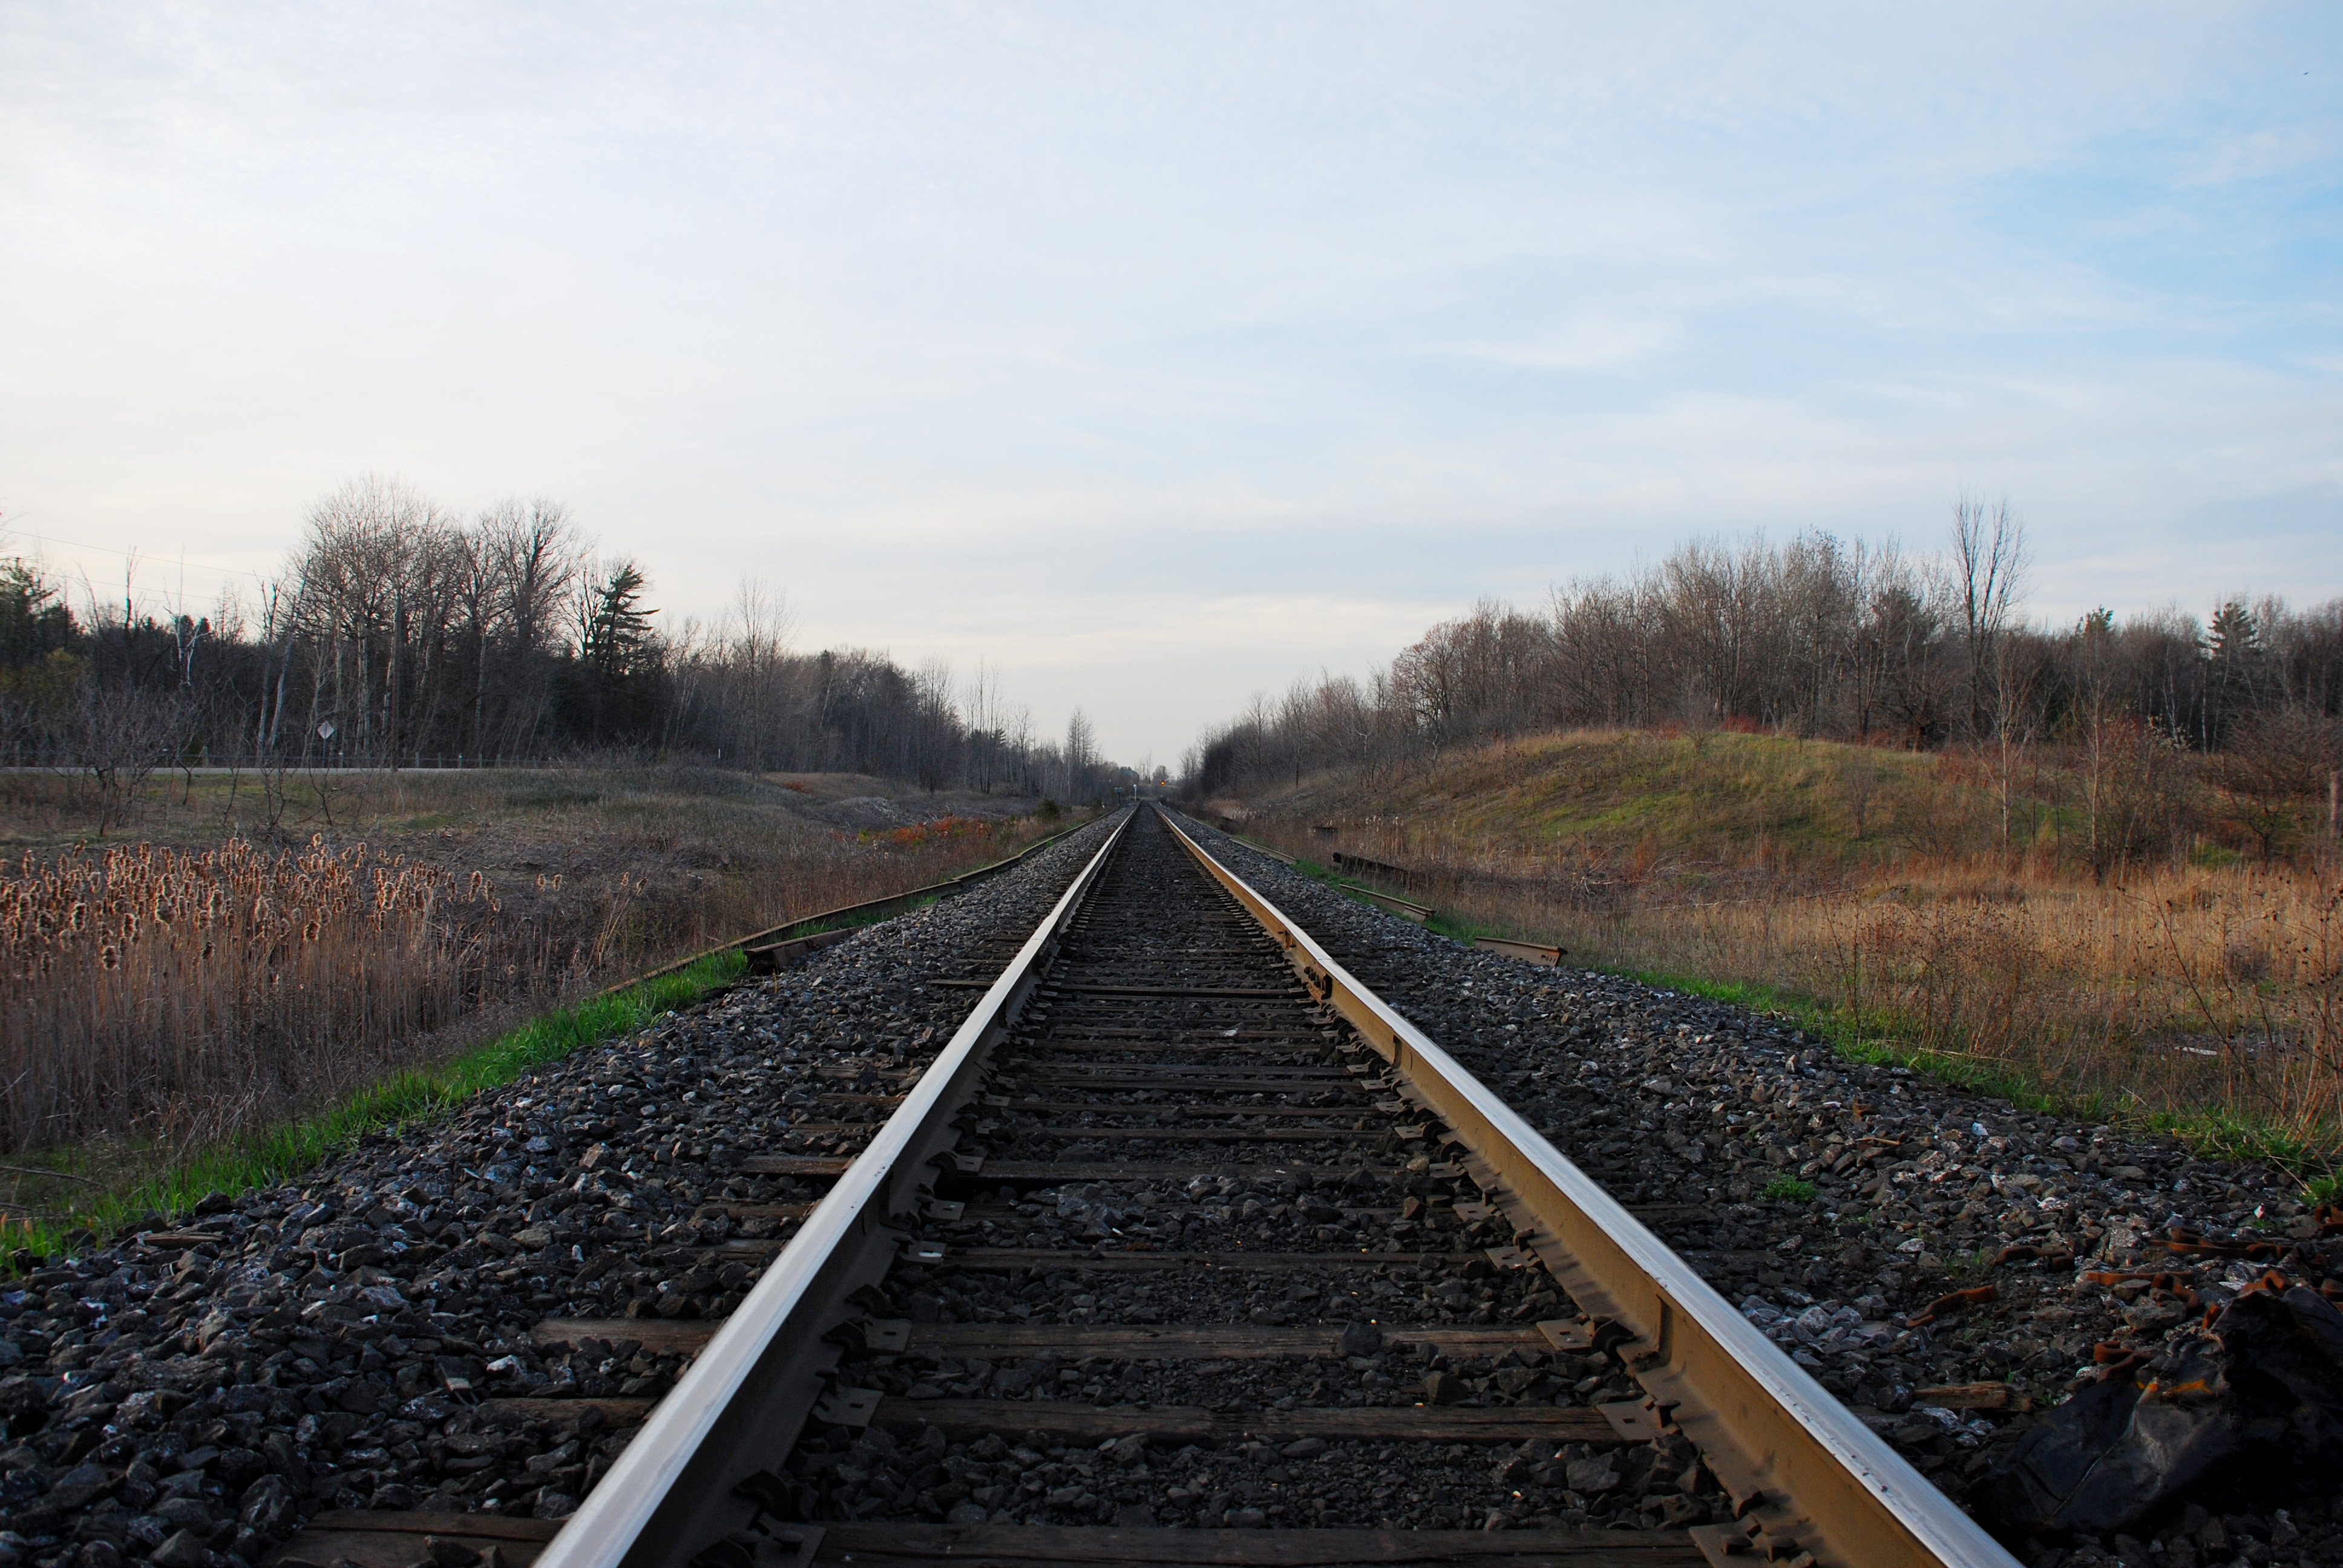 File:Railroad Tracks.JPG